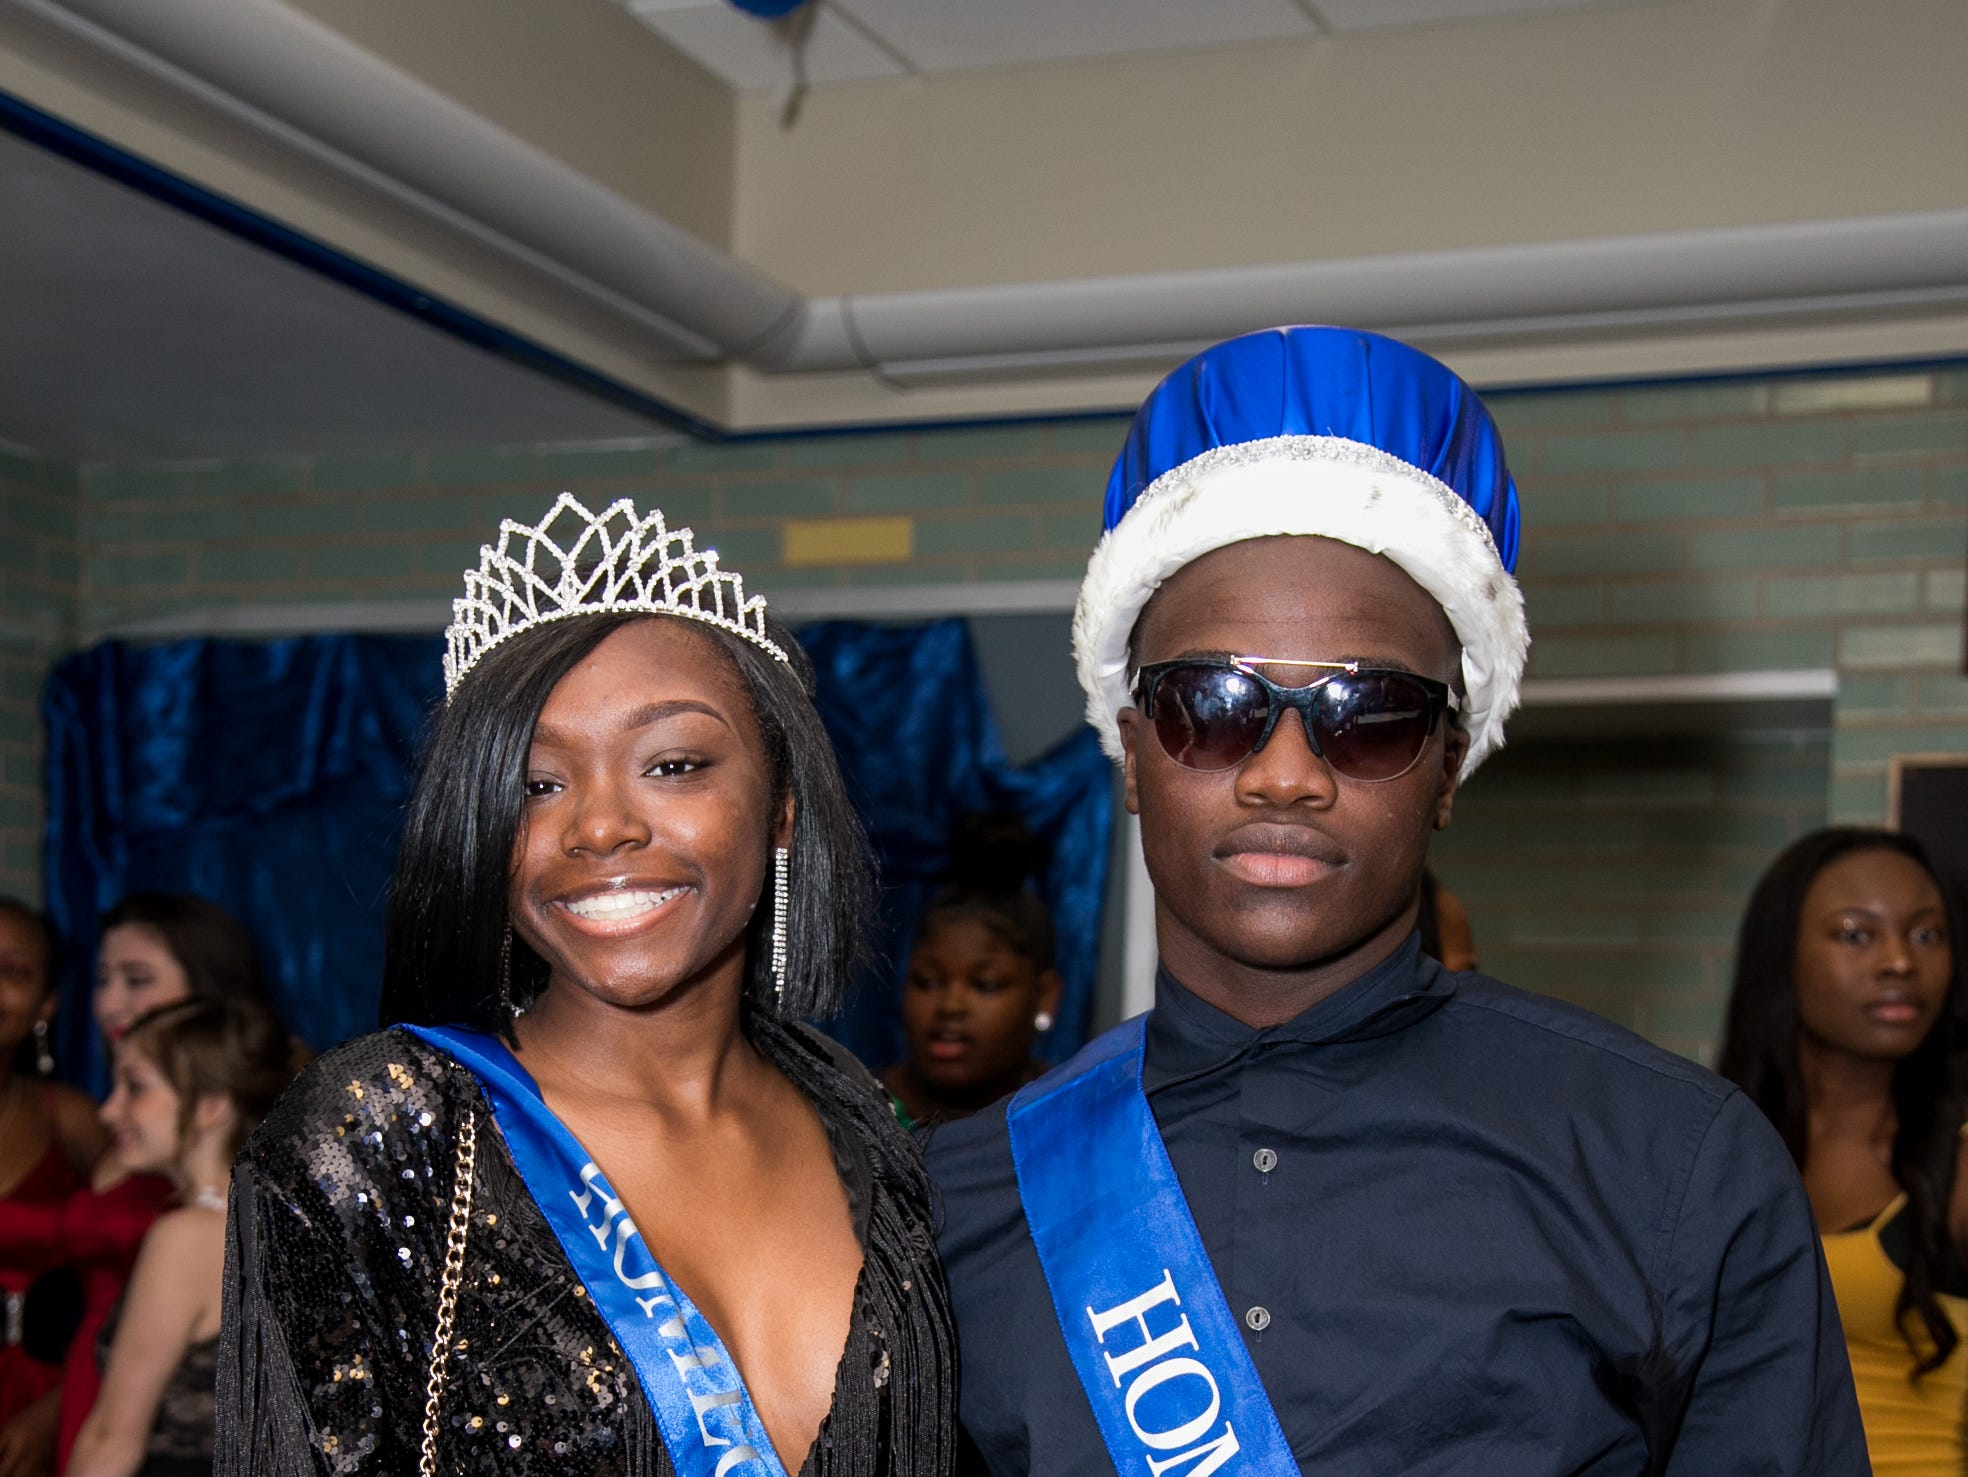 Homecoming Queen Honesty Mathis and King Foday Saccoh at the Brandywine High School homecoming dance Saturday, Oct. 20, 2018 at the school.